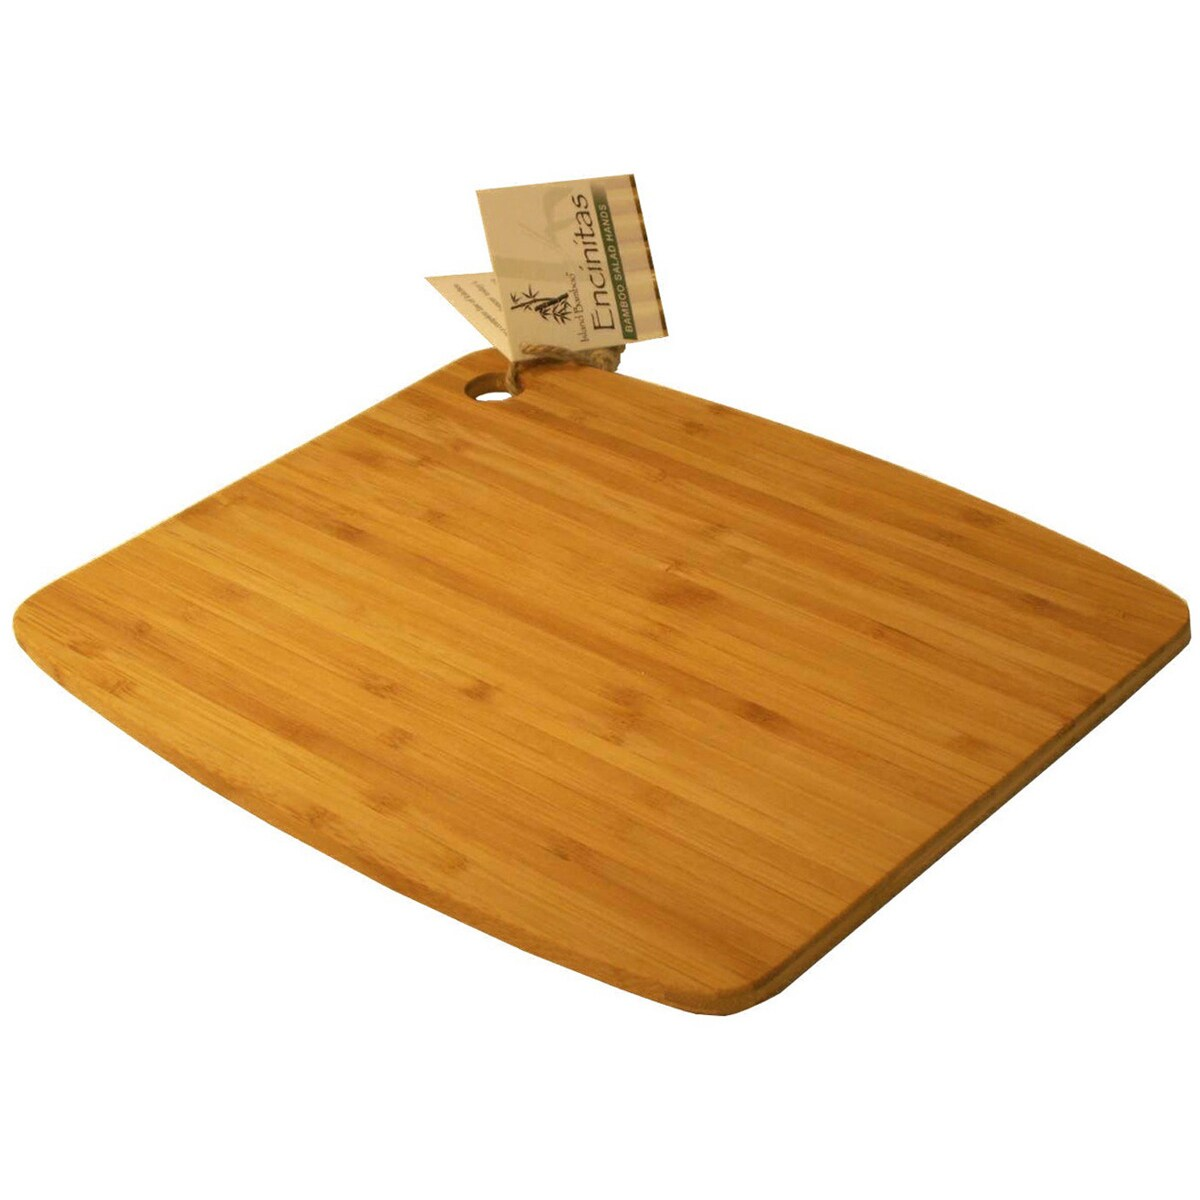 Island Bamboo Ca18mg 18 X 12 Large Bamboo Cutting Board With Handle Overstock 12537743